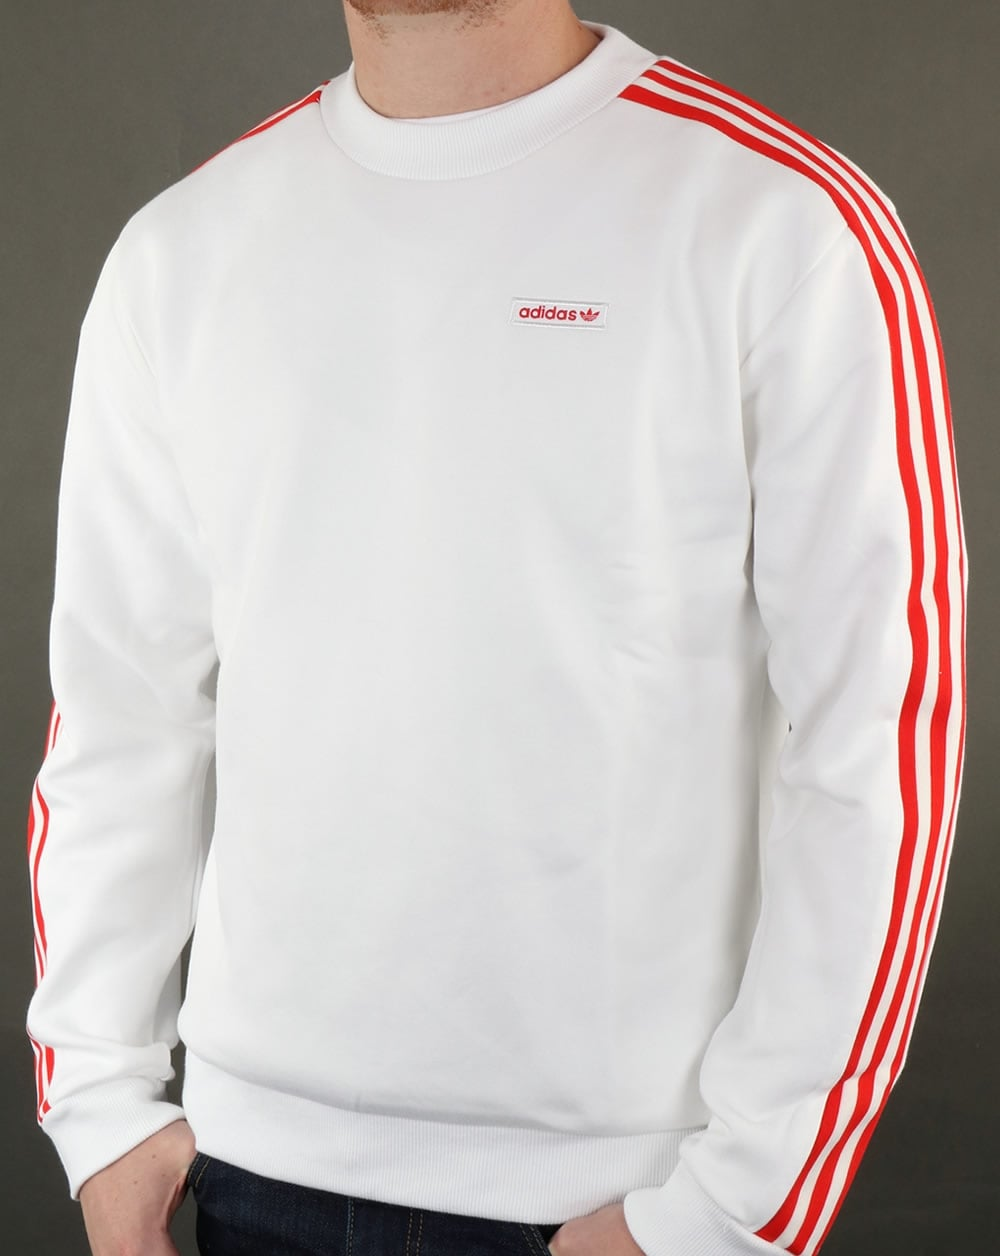 adidas originals mdn sweatshirt white men 39 s top cotton. Black Bedroom Furniture Sets. Home Design Ideas